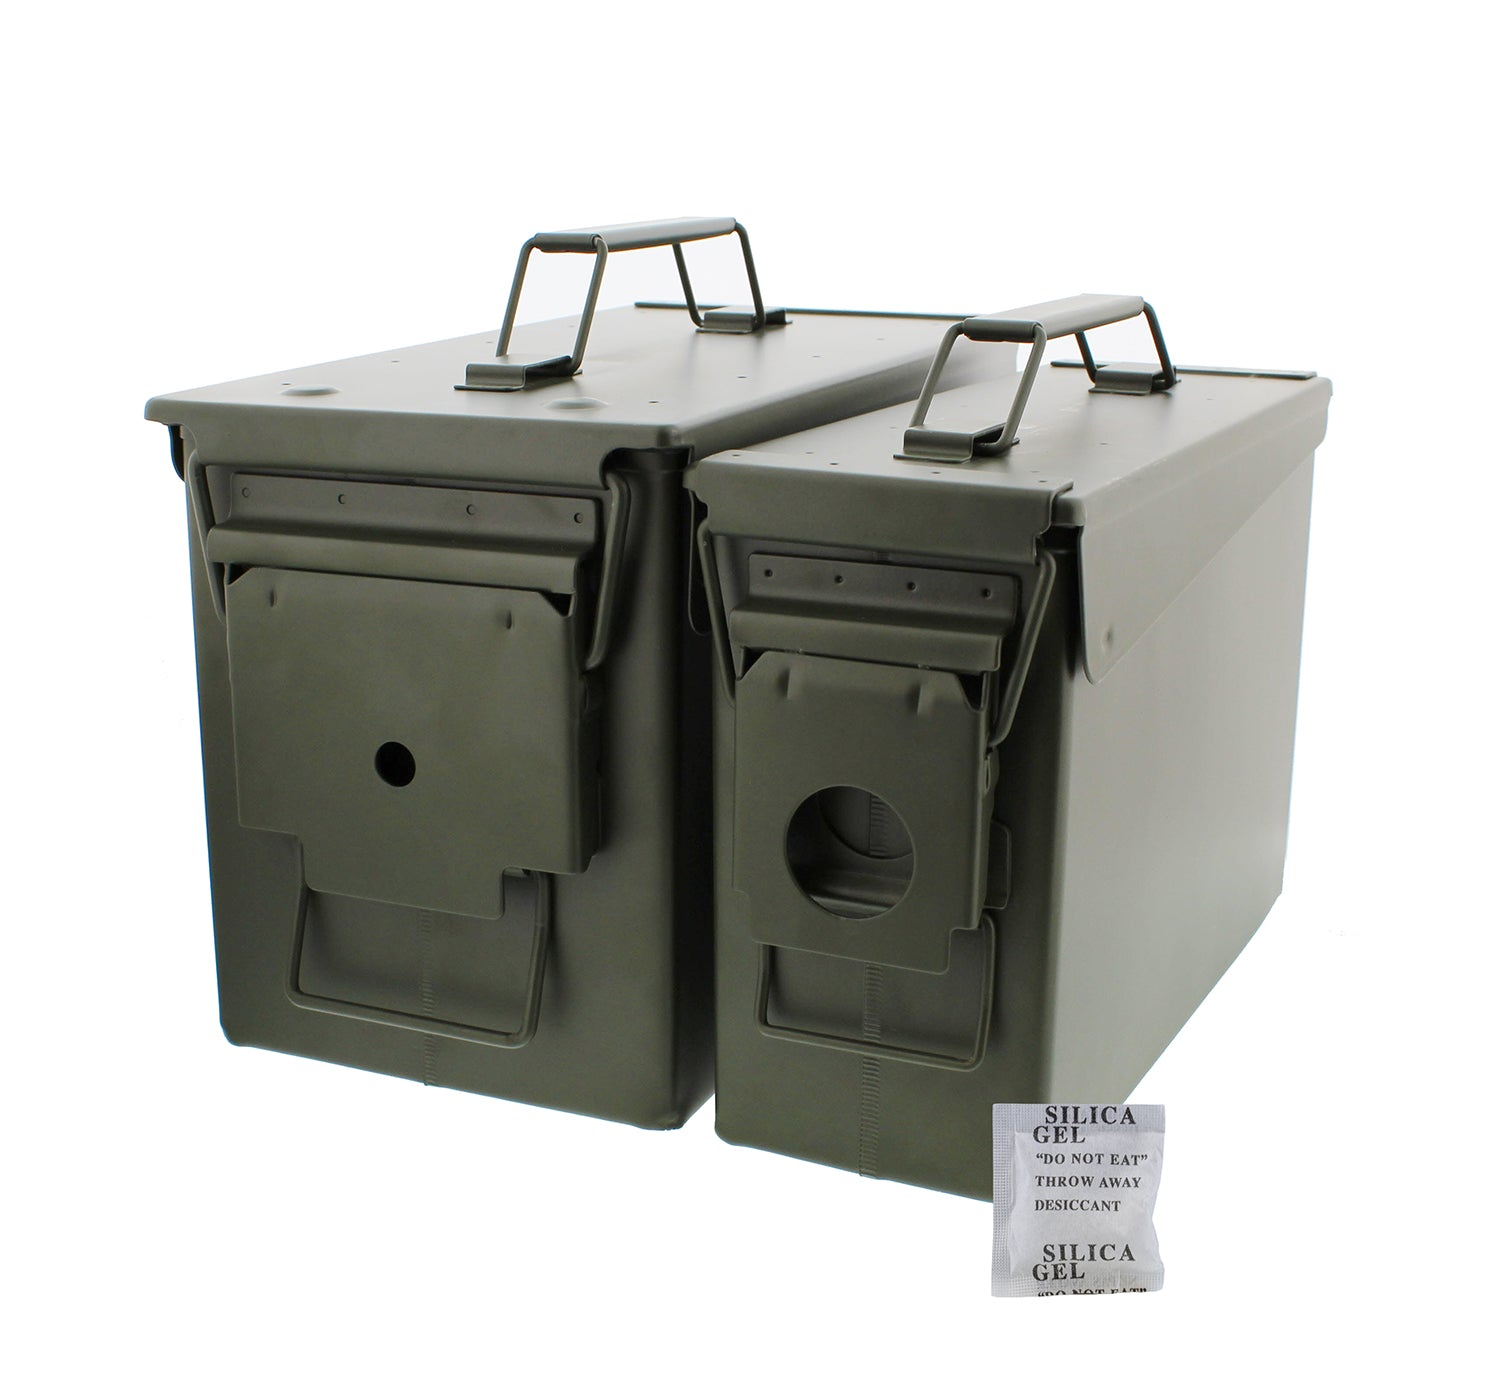 30 and 50 Cal Metal Gun Ammo Can 2-Pack Military Box Set Ammo Storage